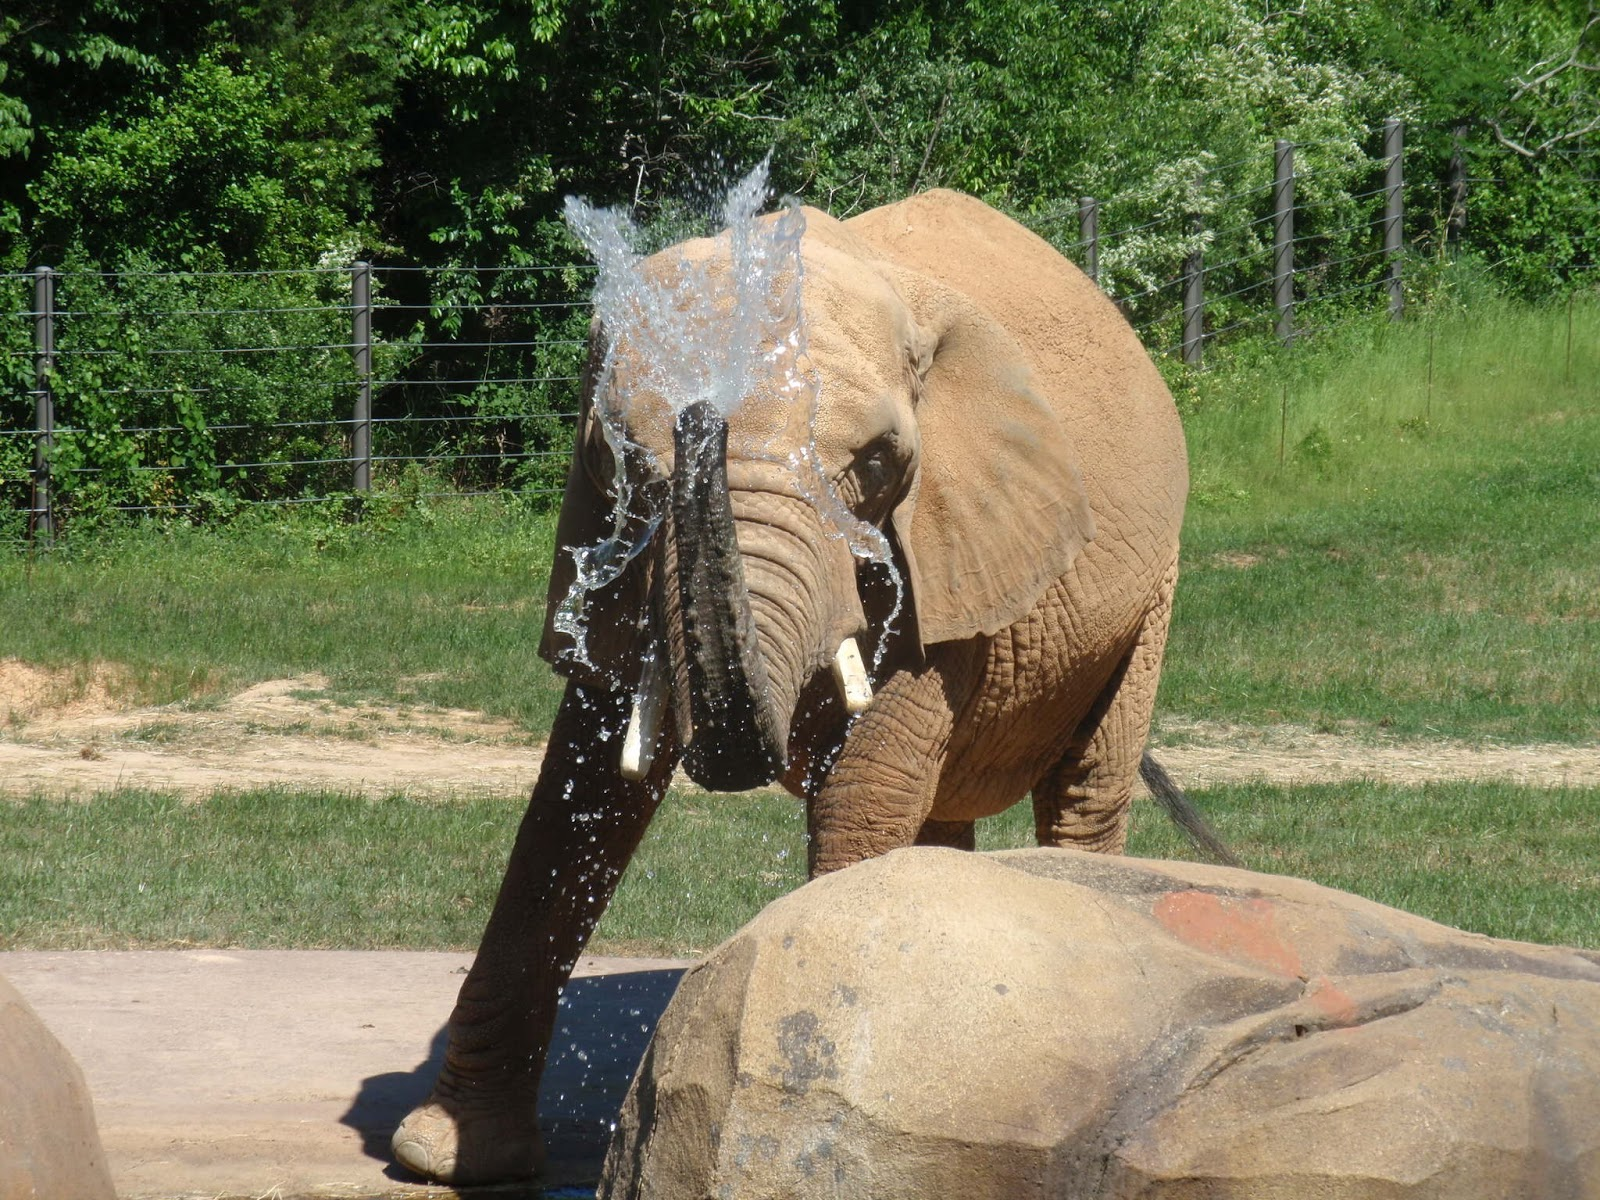 An elephant spraying water with it's trunk.